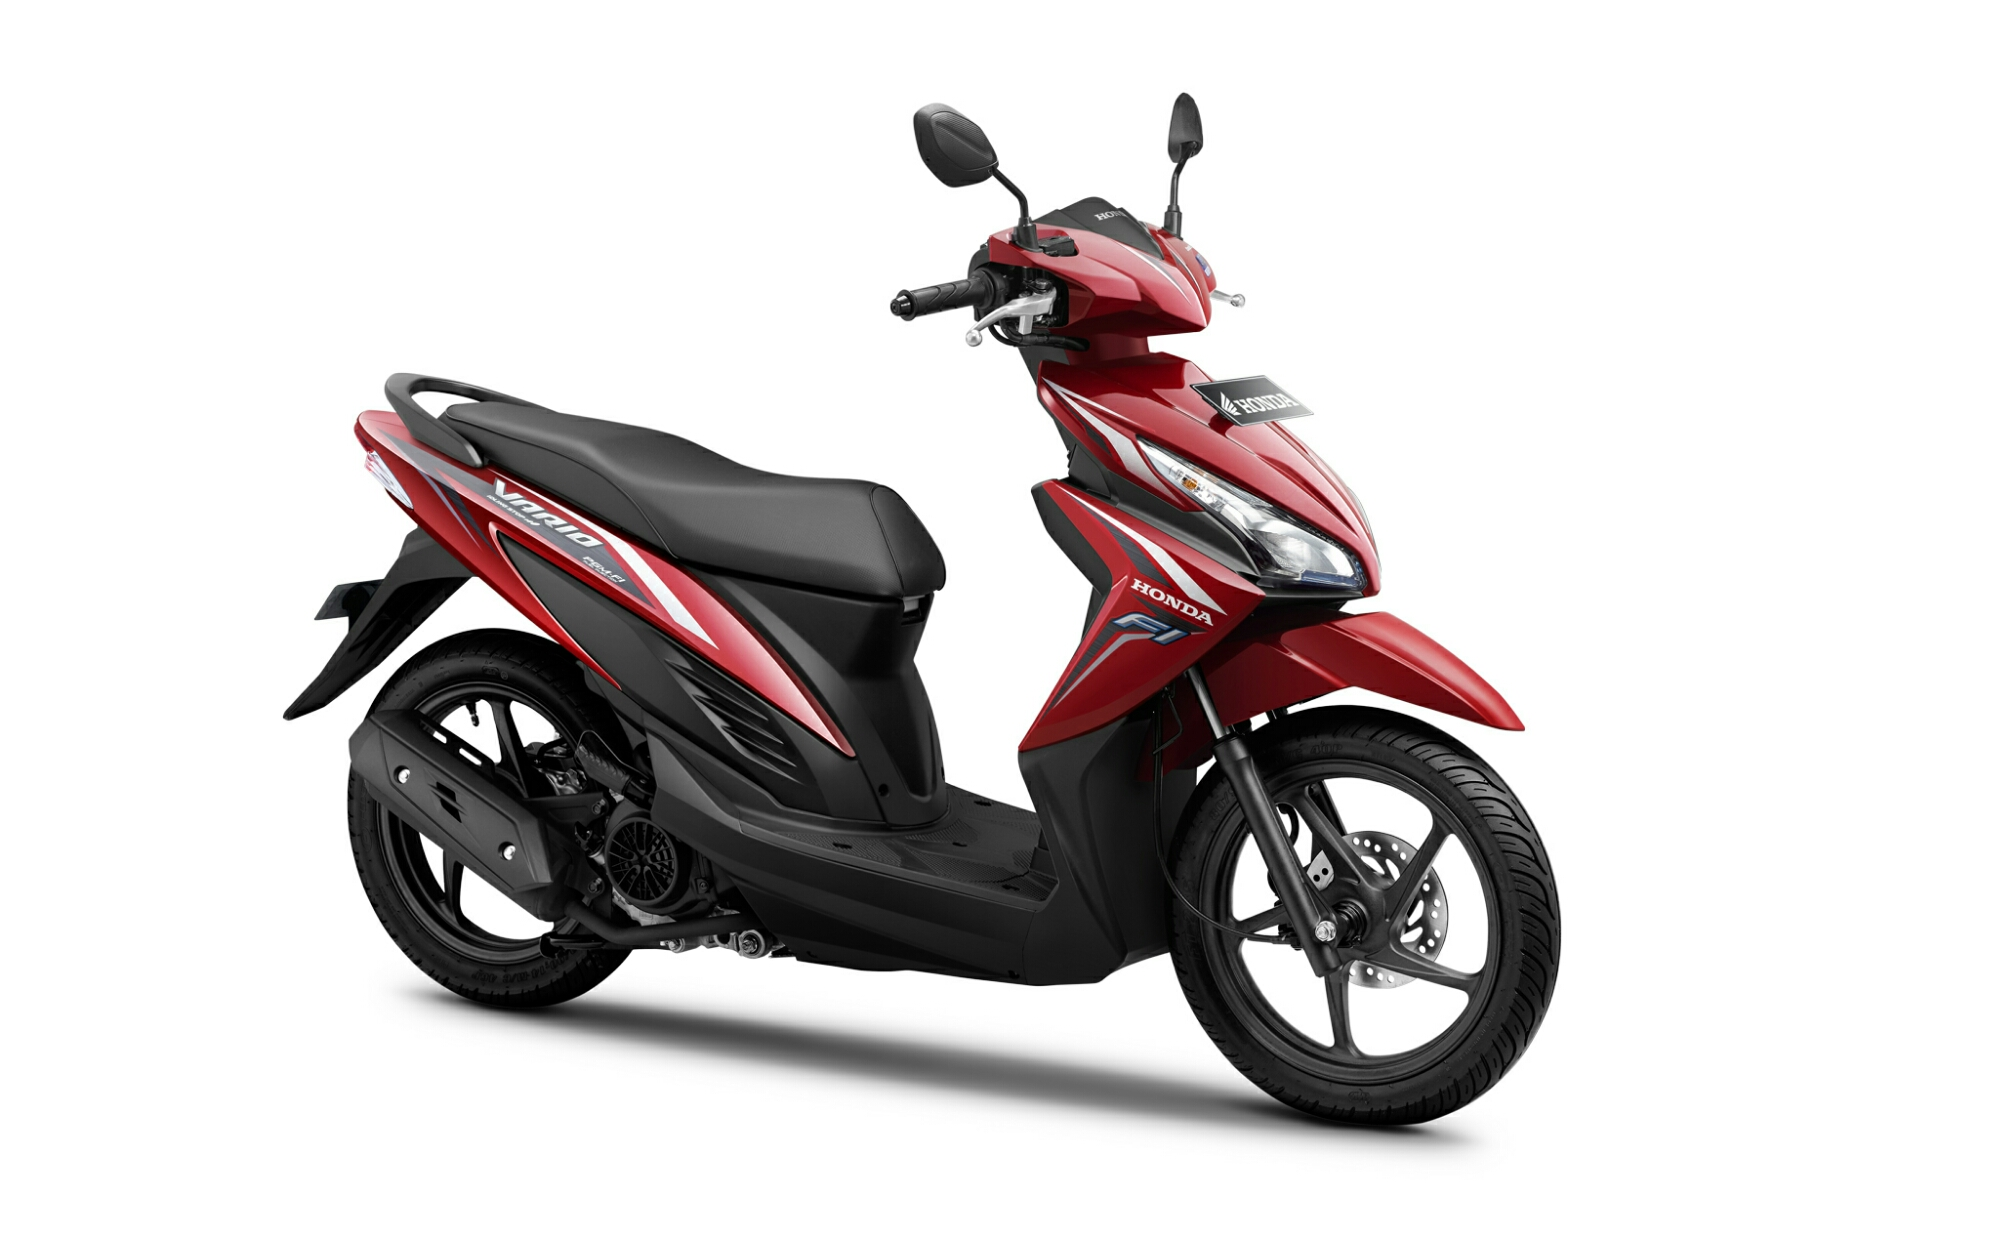 September 2015 All New Cb 150r Streetfire Honda Racing Red Kendal Image